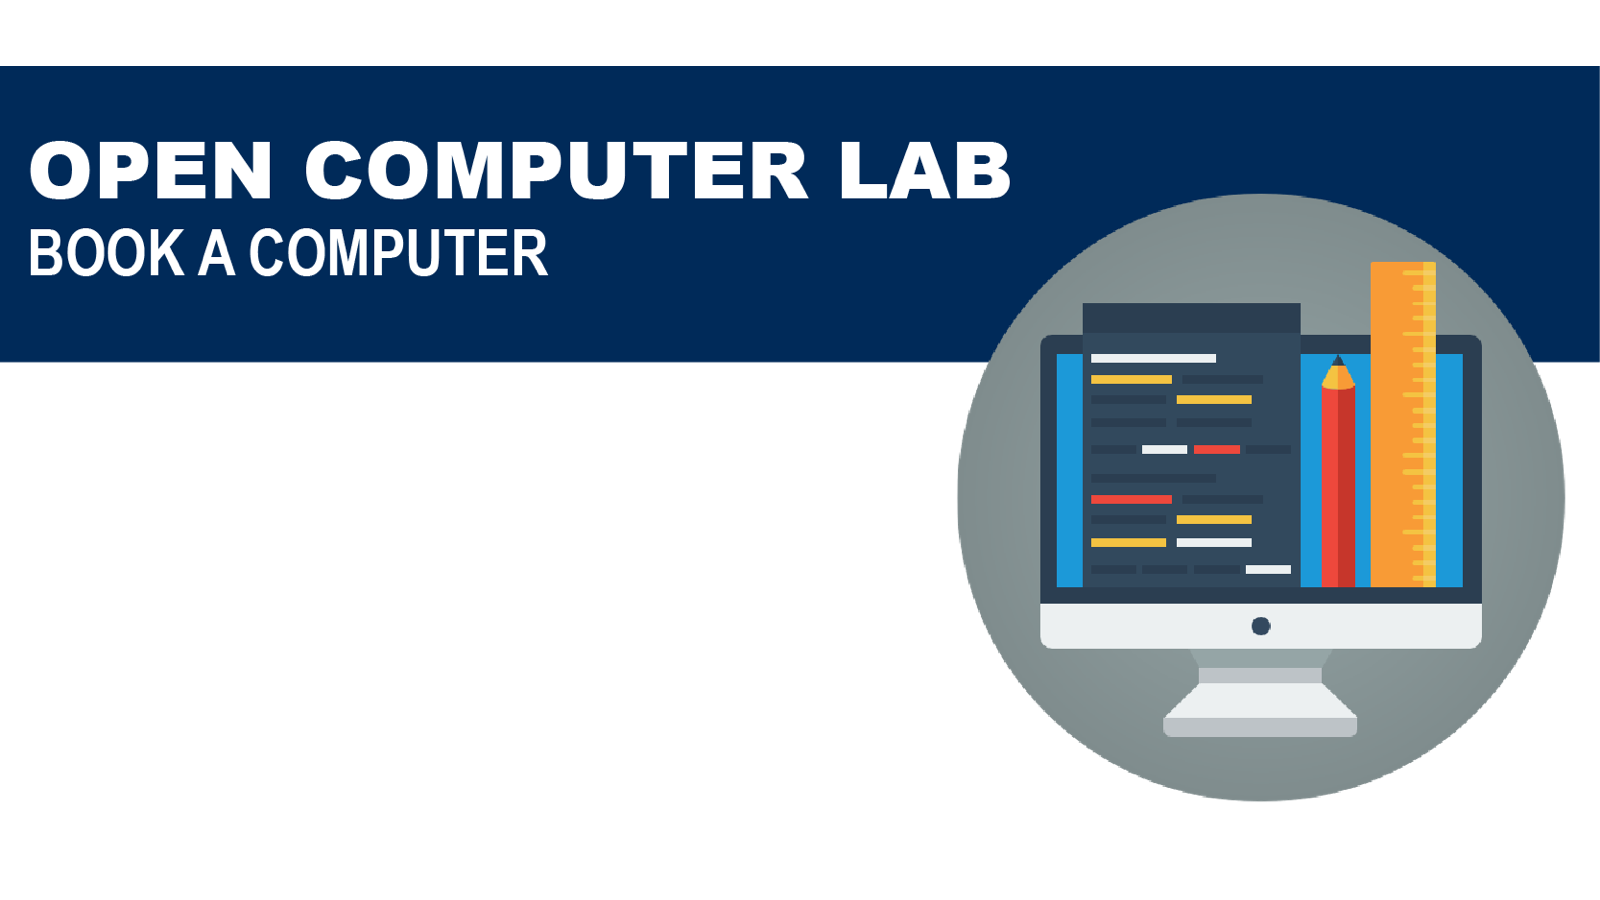 Book a Computer in the Open Lab